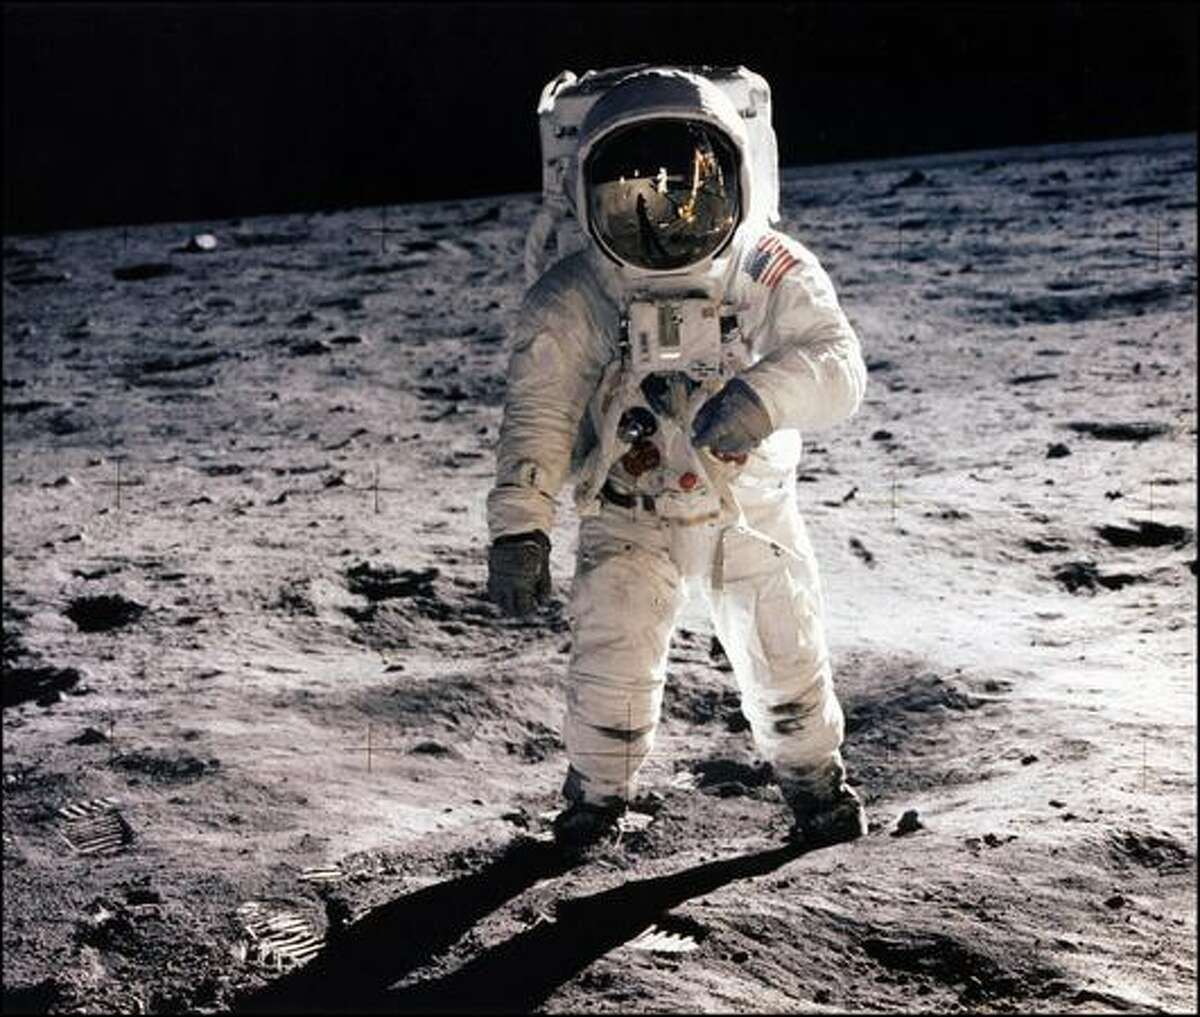 Picture taken on July 20, 1969 shows astronaut Edwin E. Aldrin Jr., lunar module pilot, walking on the surface of the moon during the Apollo 11 extravehicular activity (EVA). Astronaut Neil A. Armstrong took this photograph with a 70mm lunar surface camera. With one small step off a ladder, commander of the Apollo 11 mission Neil Armstrong of the U.S. became the first human to set foot on the moon on July 20, 1969, before the eyes of hundreds of millions of awed television viewers worldwide. With that step, he placed mankind's first footprint on an extraterrestrial world and gained instant hero status.